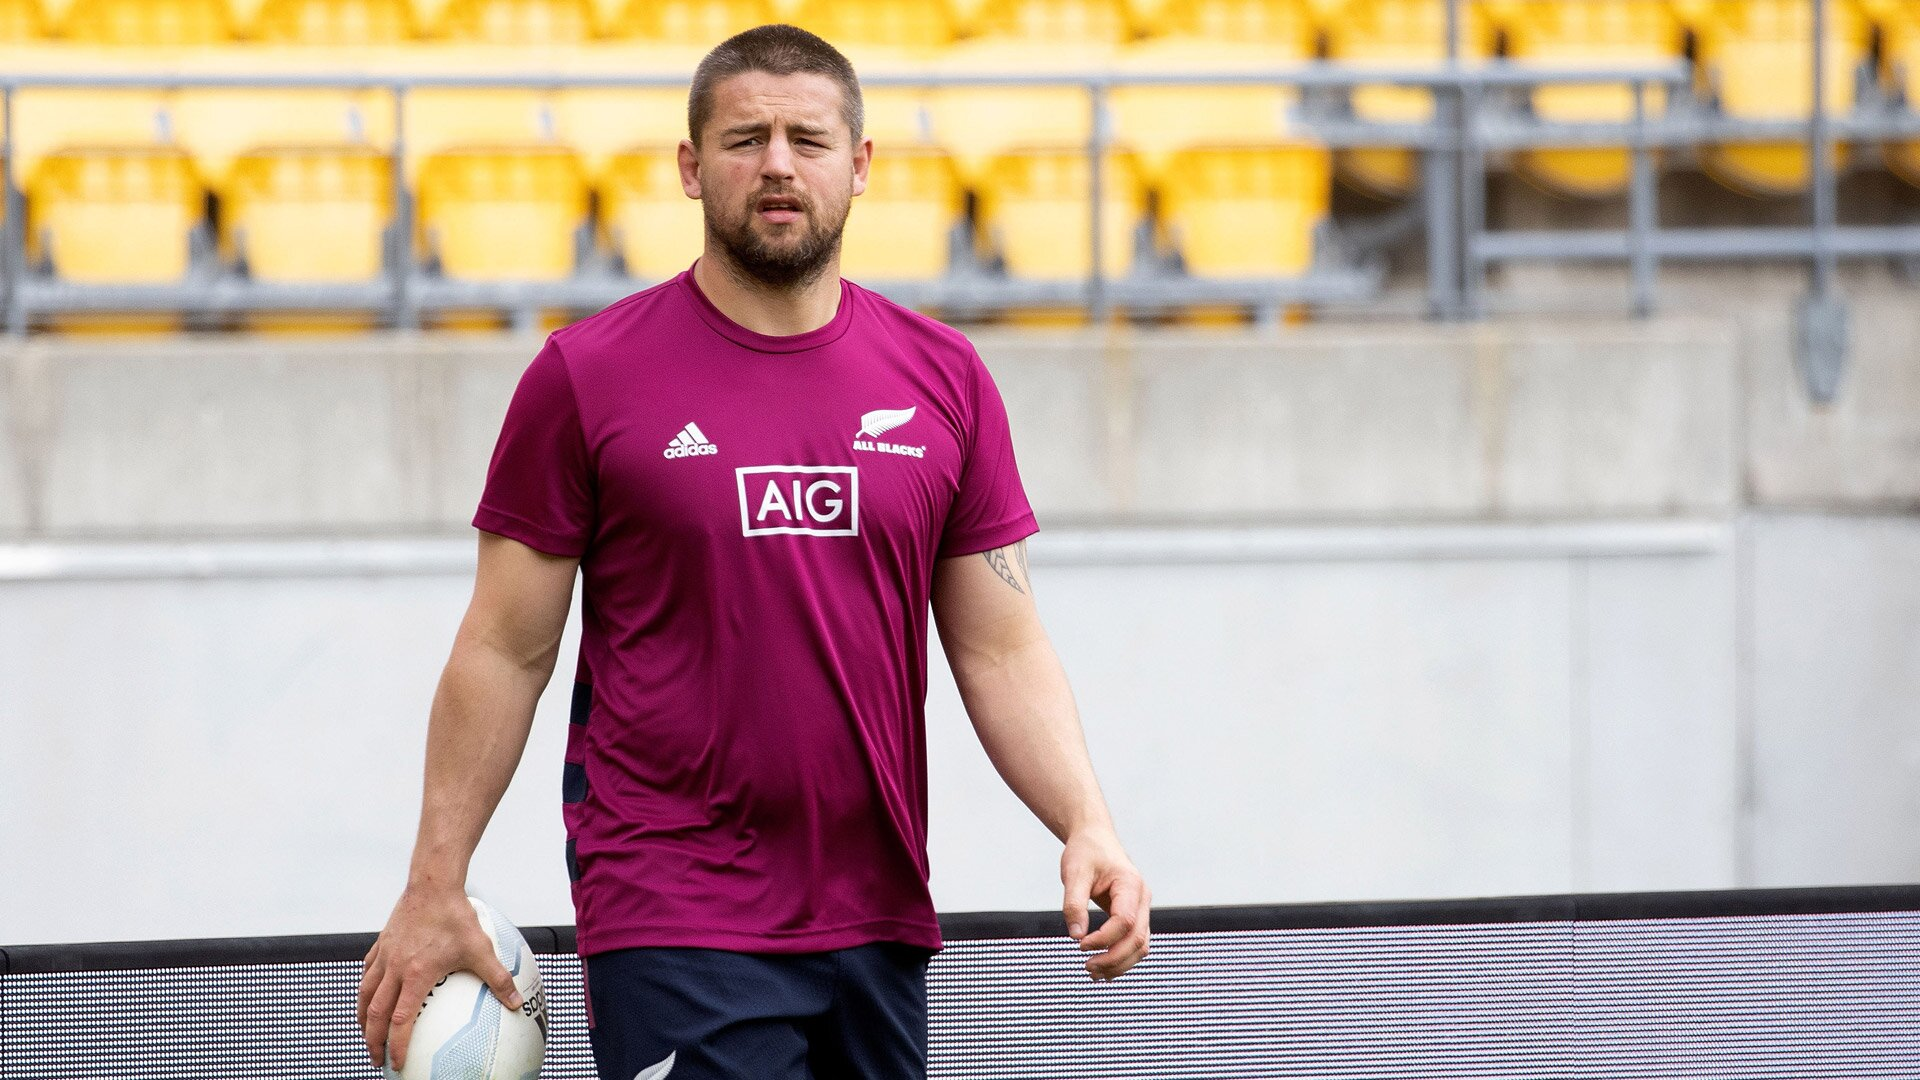 Harsh lessons from All Blacks review: 'They've got guys smashing us at the ruck and us parking up having a holiday'